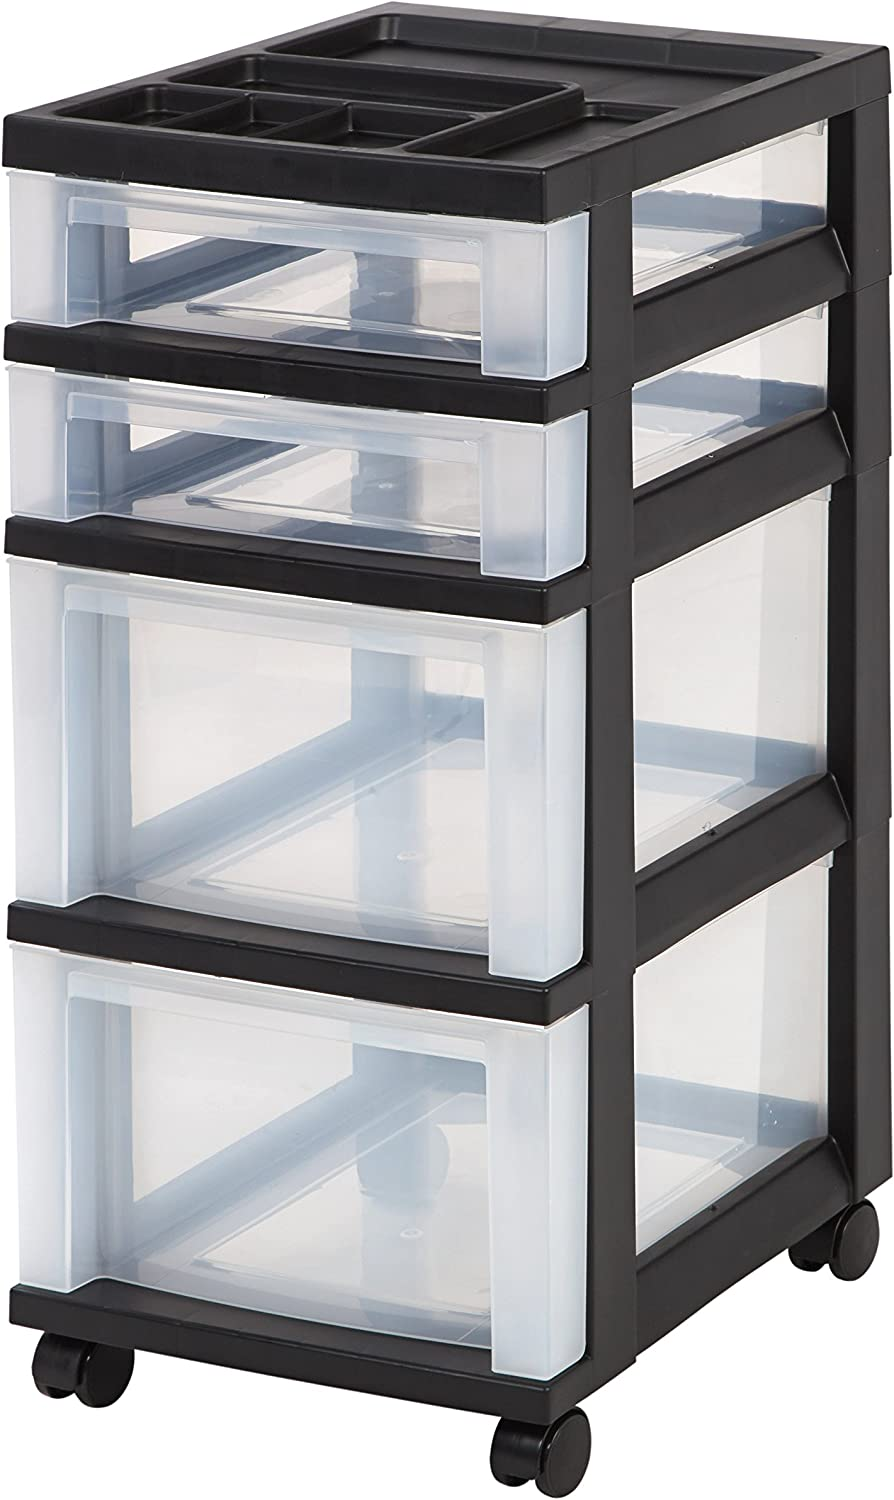 IRIS USA MC-322-TOP 4-Drawer Storage Cart with Organizer Top, Clear: Home & Kitchen